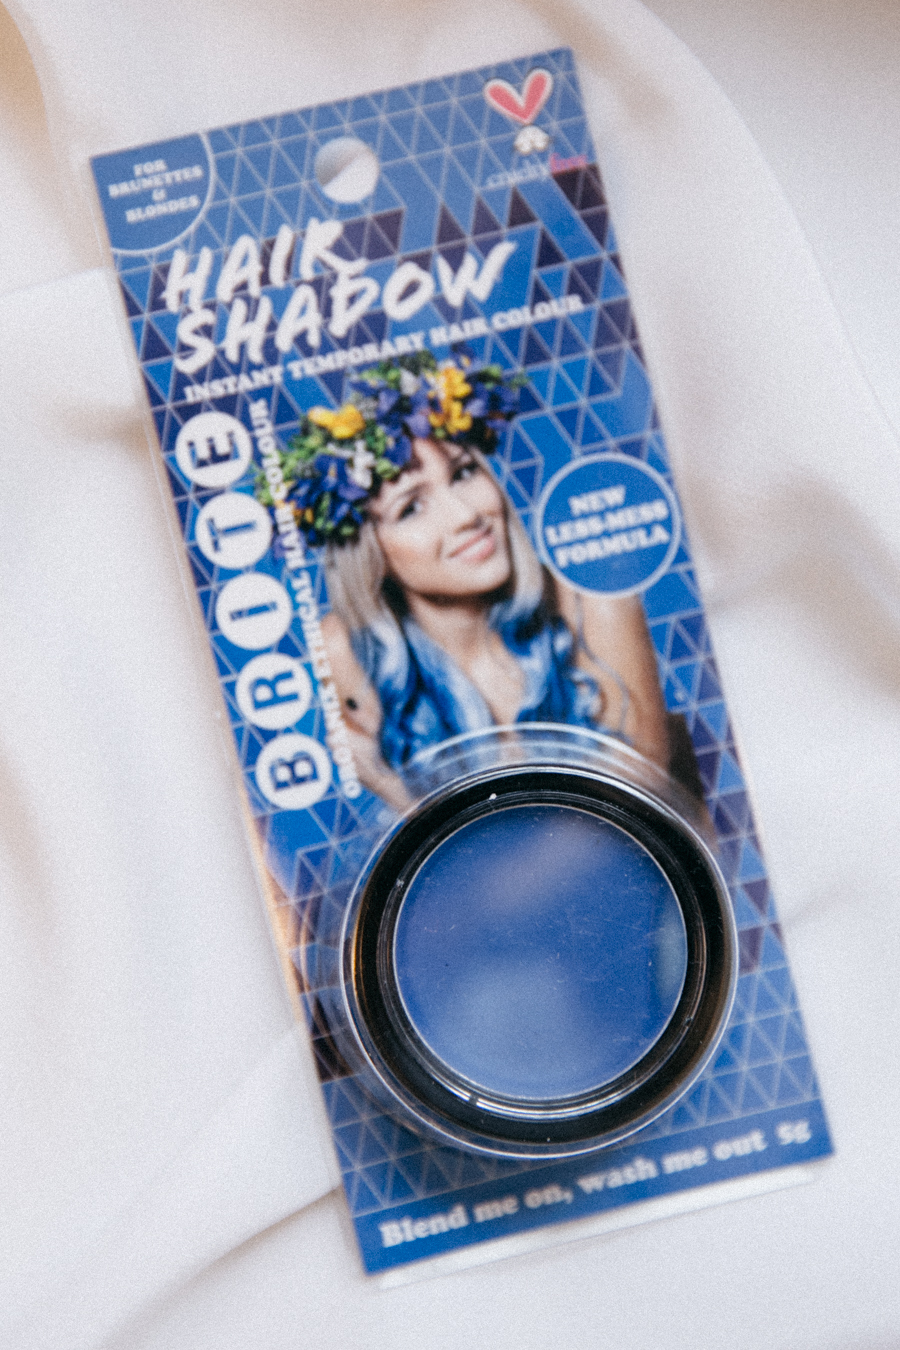 BRITE hair shadow.